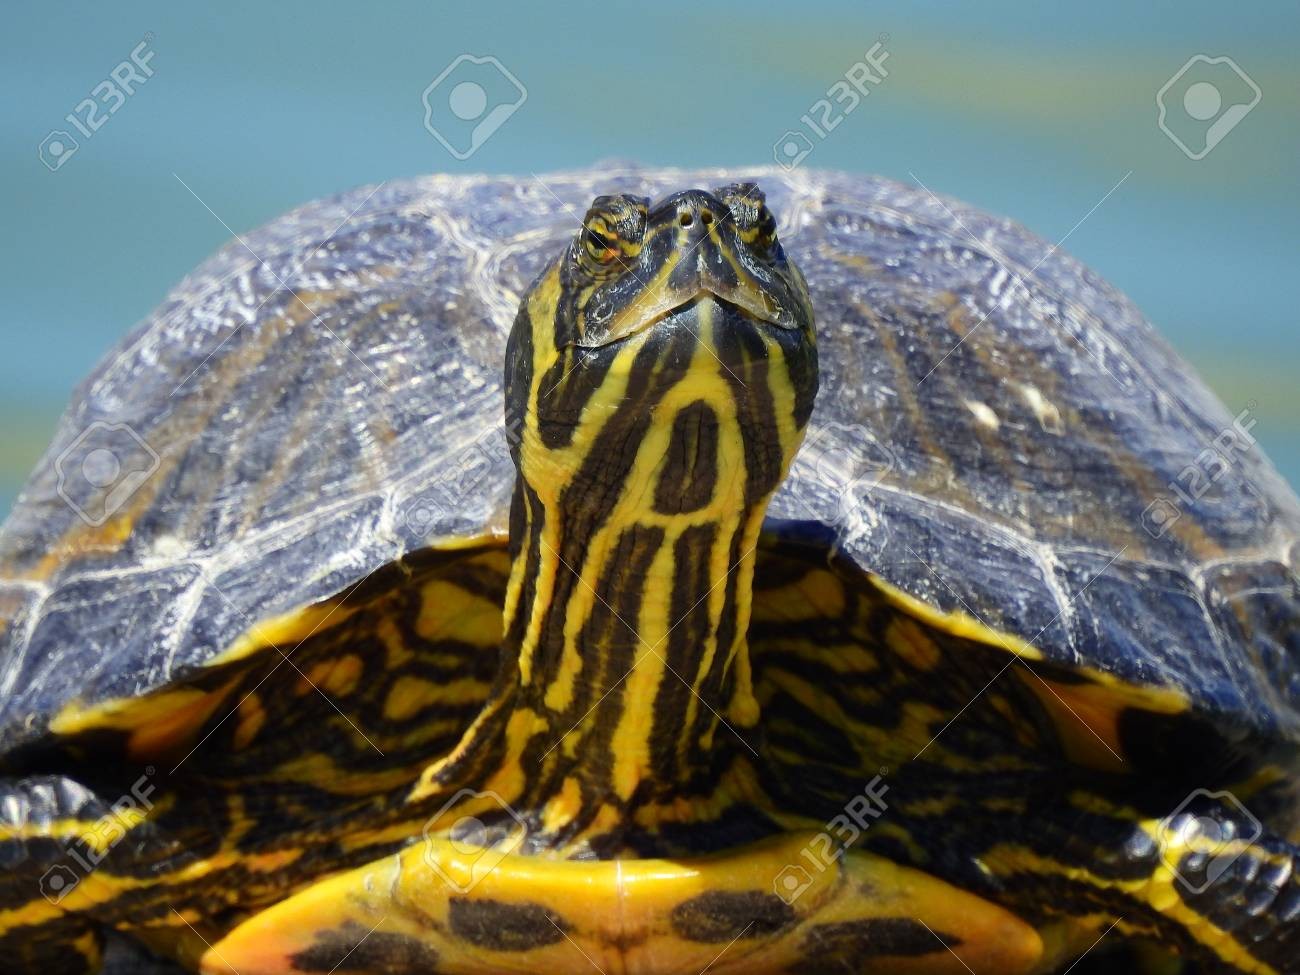 Close Up Photo Of A Yellow Bellied Slider Turtle Probably Bought Stock Photo Picture And Royalty Free Image Image 101513639